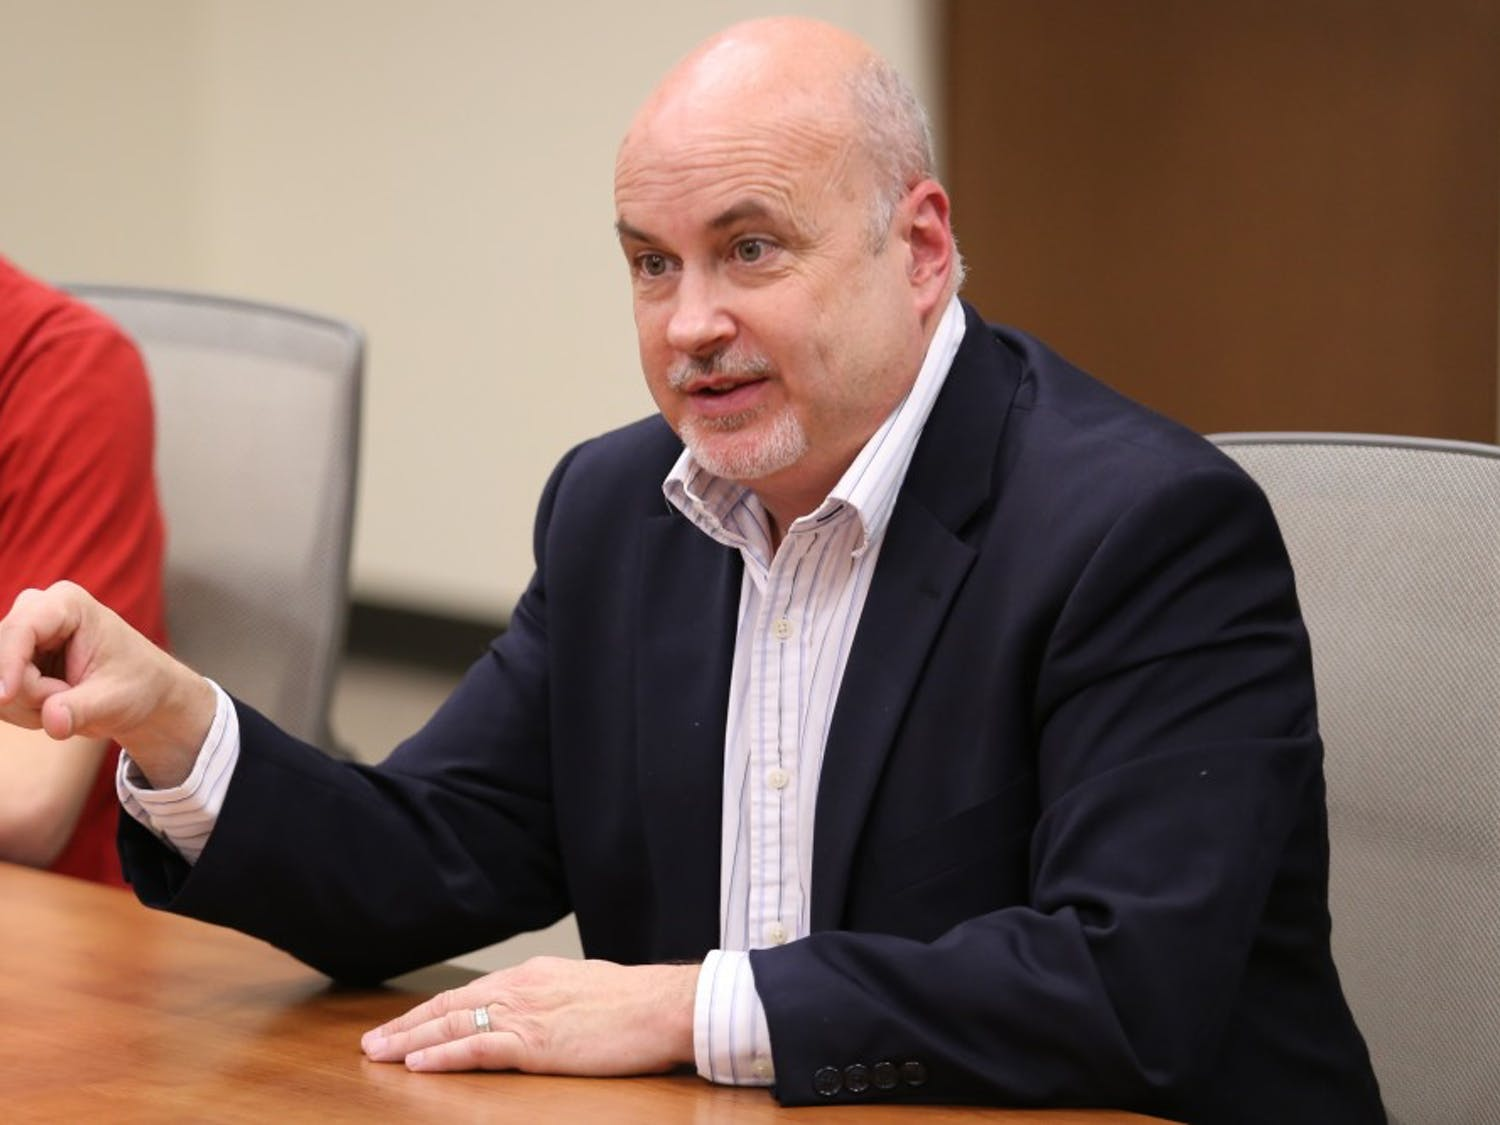 Rep. Mark Pocan, D-Wis., is a cosponsor of legislation that would prohibit federal dollars from being used to implement Trump's immigration ban.